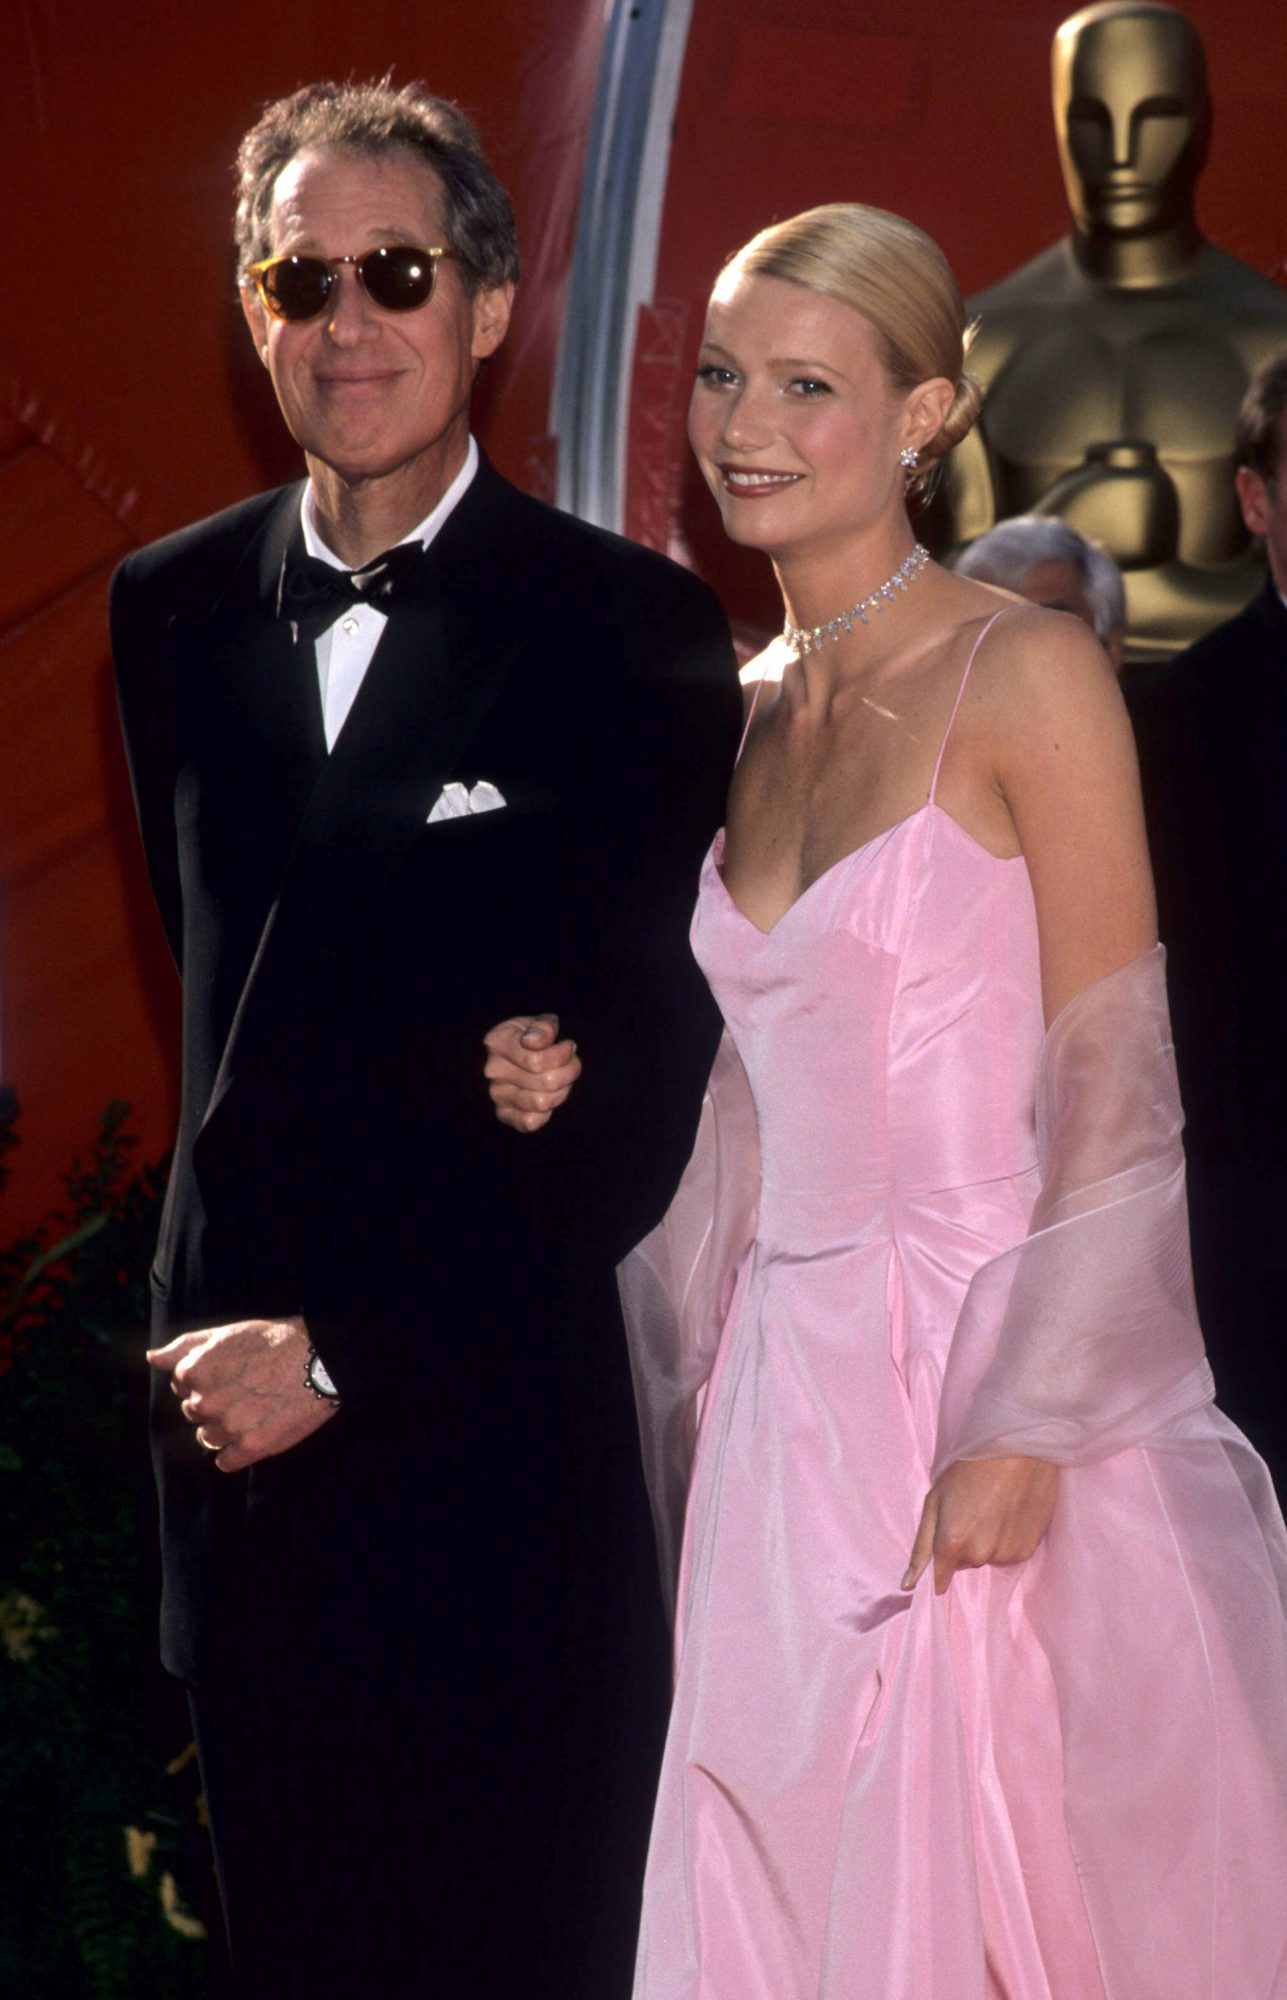 Gwyneth Paltrow's Dad Gave Her a Brutal Reality Check After She Won an Oscar